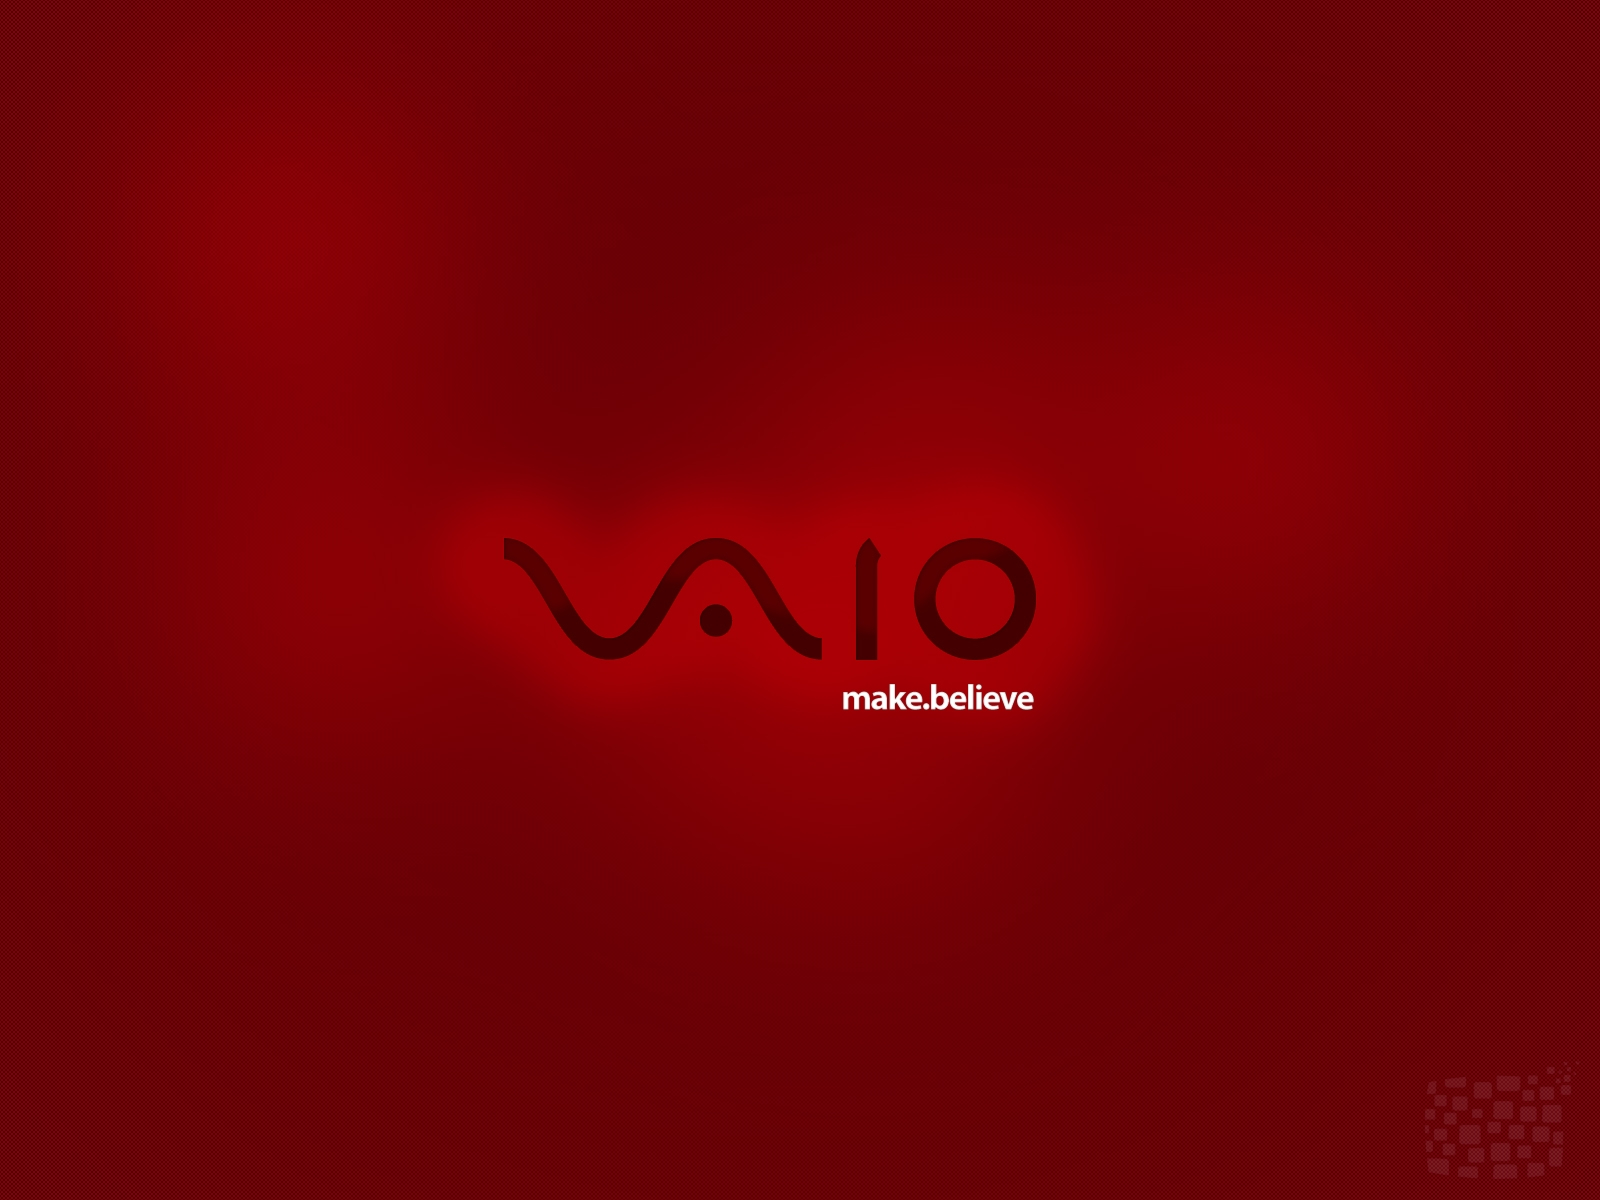 vaio red wallpaper by - photo #10